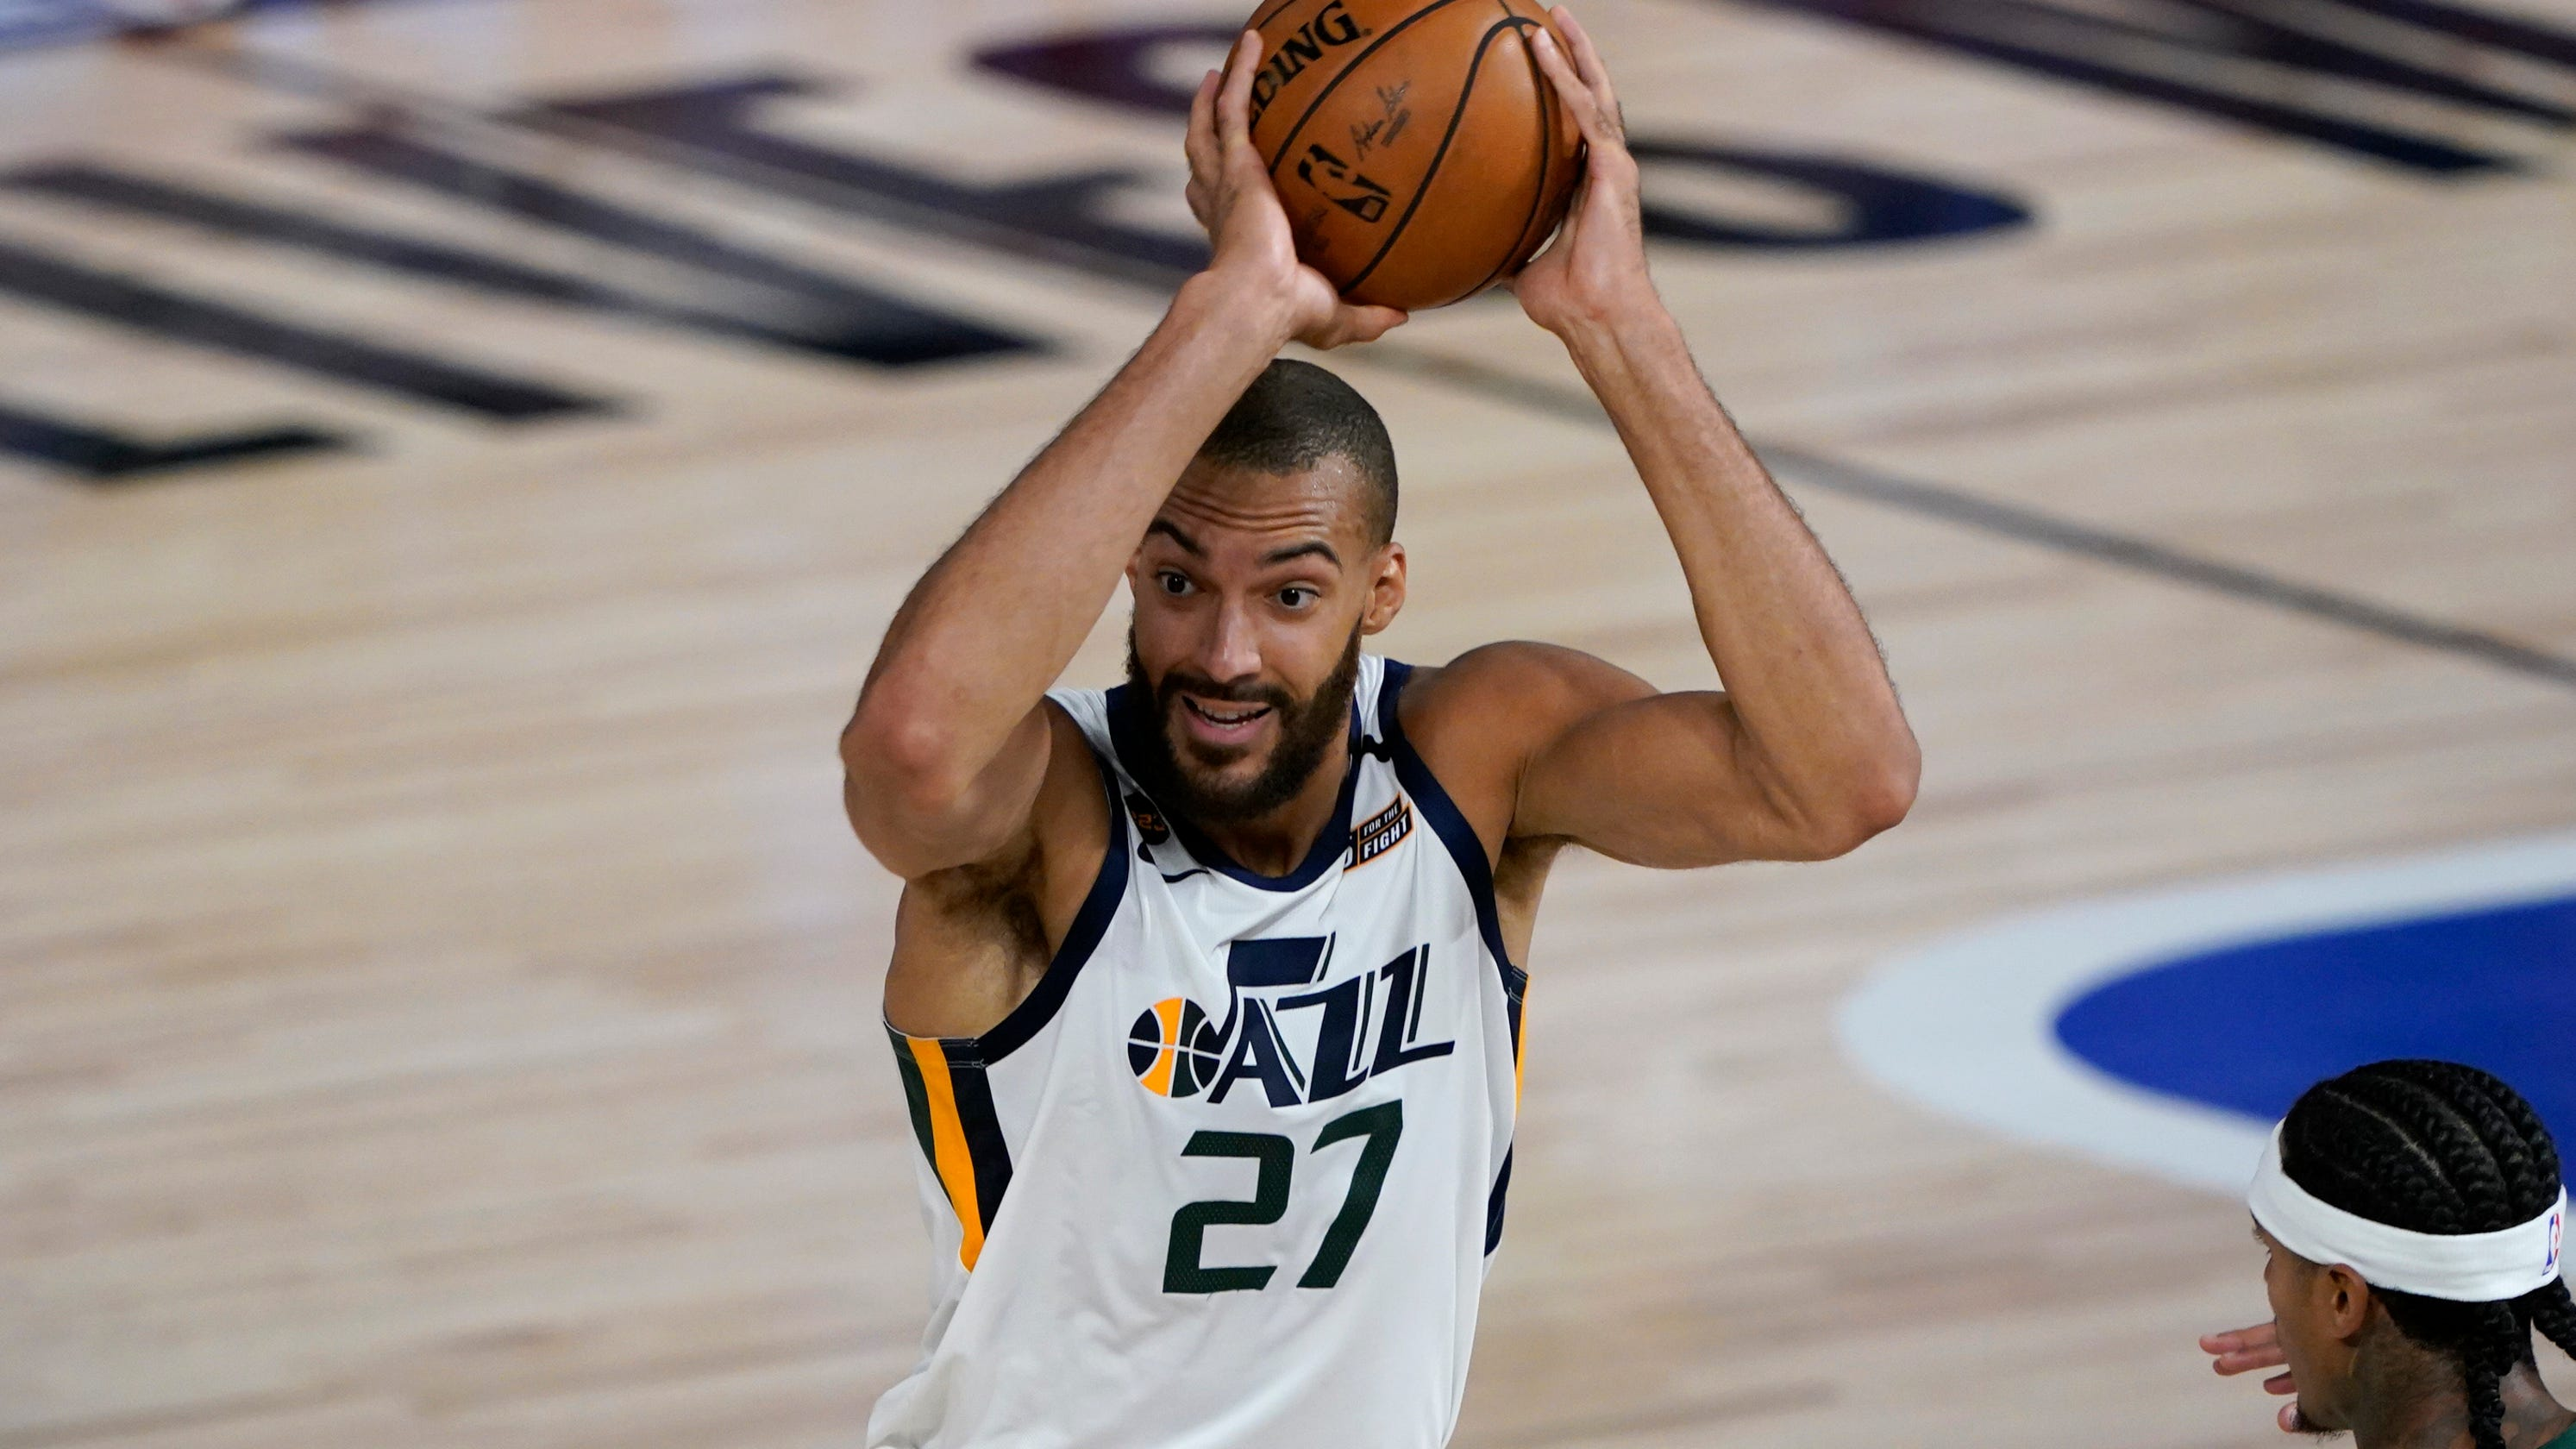 Jazz center Rudy Gobert, whose positive COVID-19 test led to NBA shutdown, hits winning free throws to beat Pelicans as season resumes